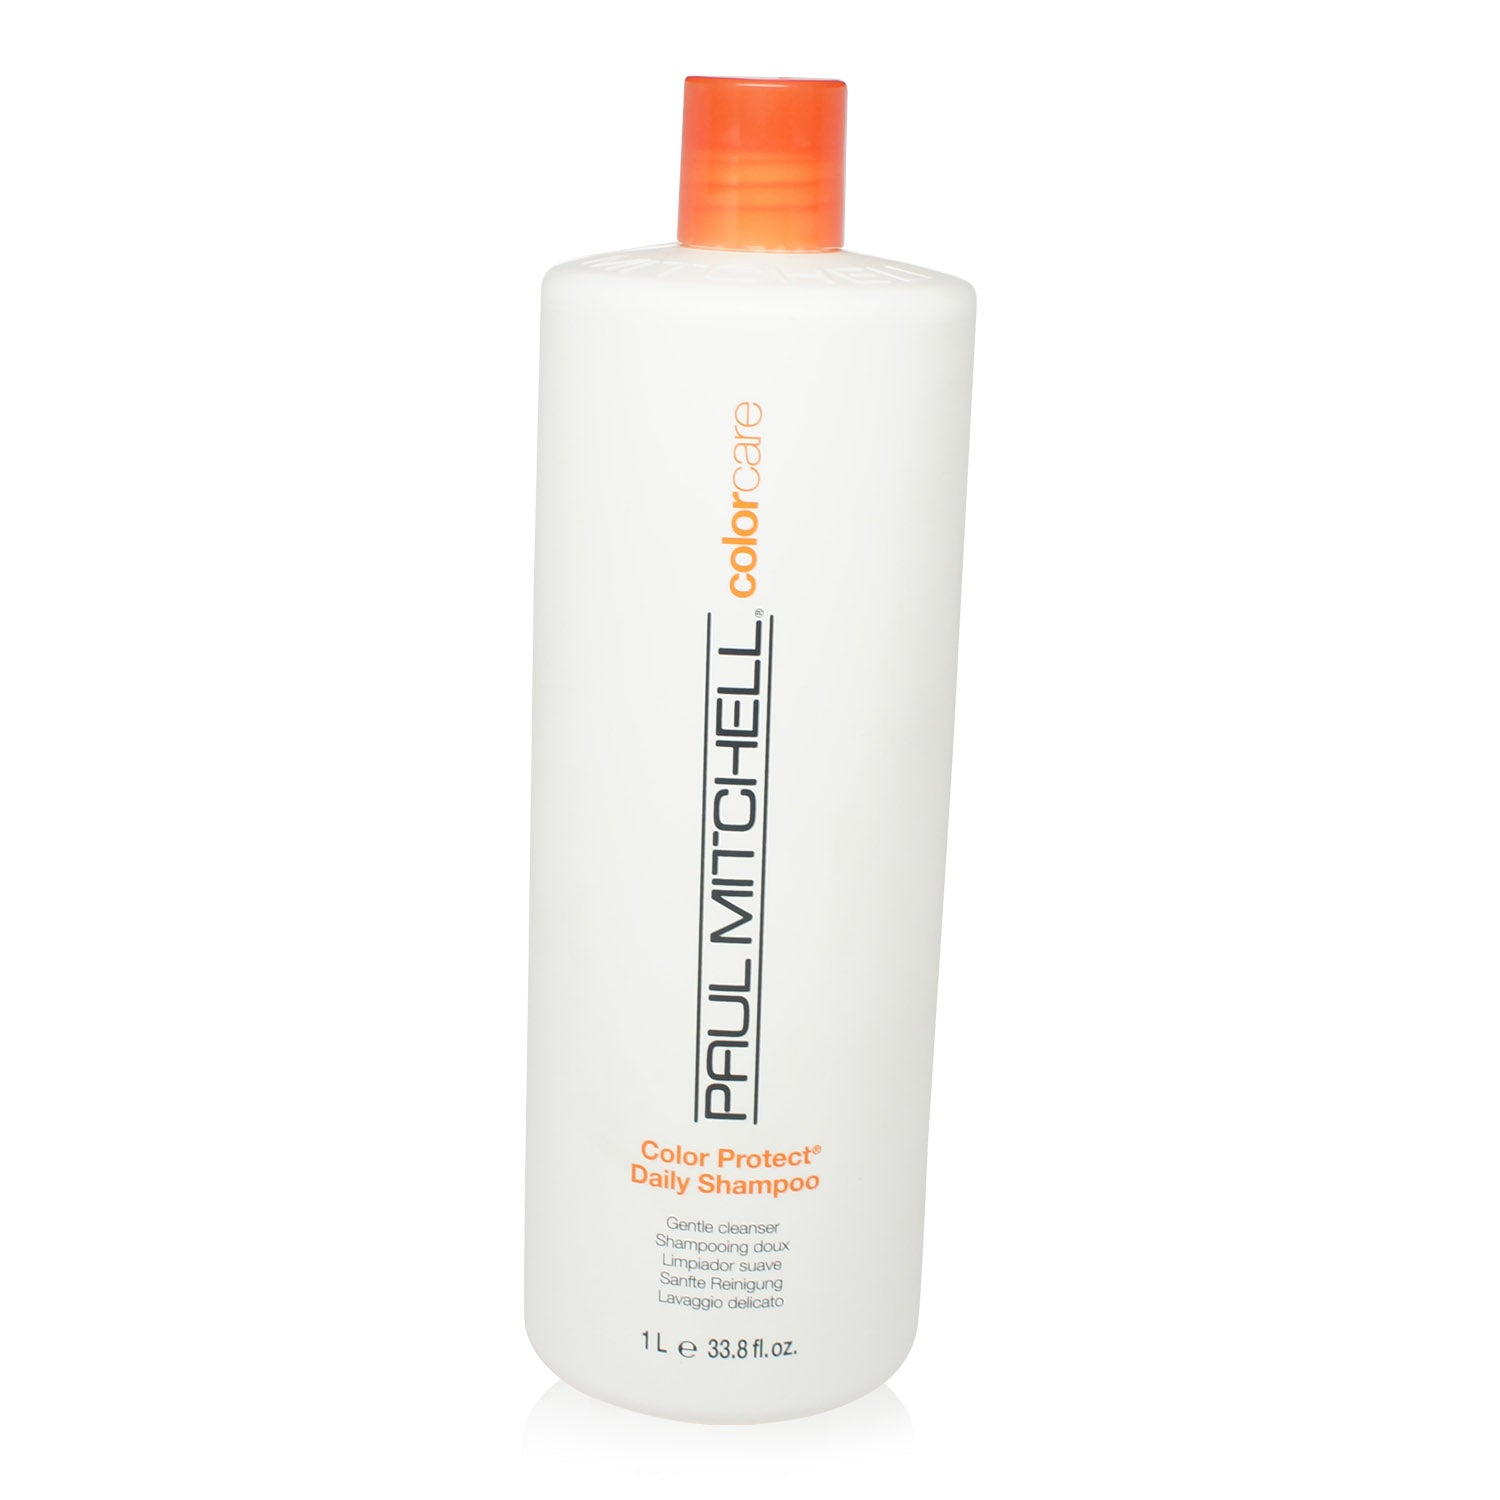 Paul Mitchell Color Protect Daily Shampoo Liter Lala Daisy